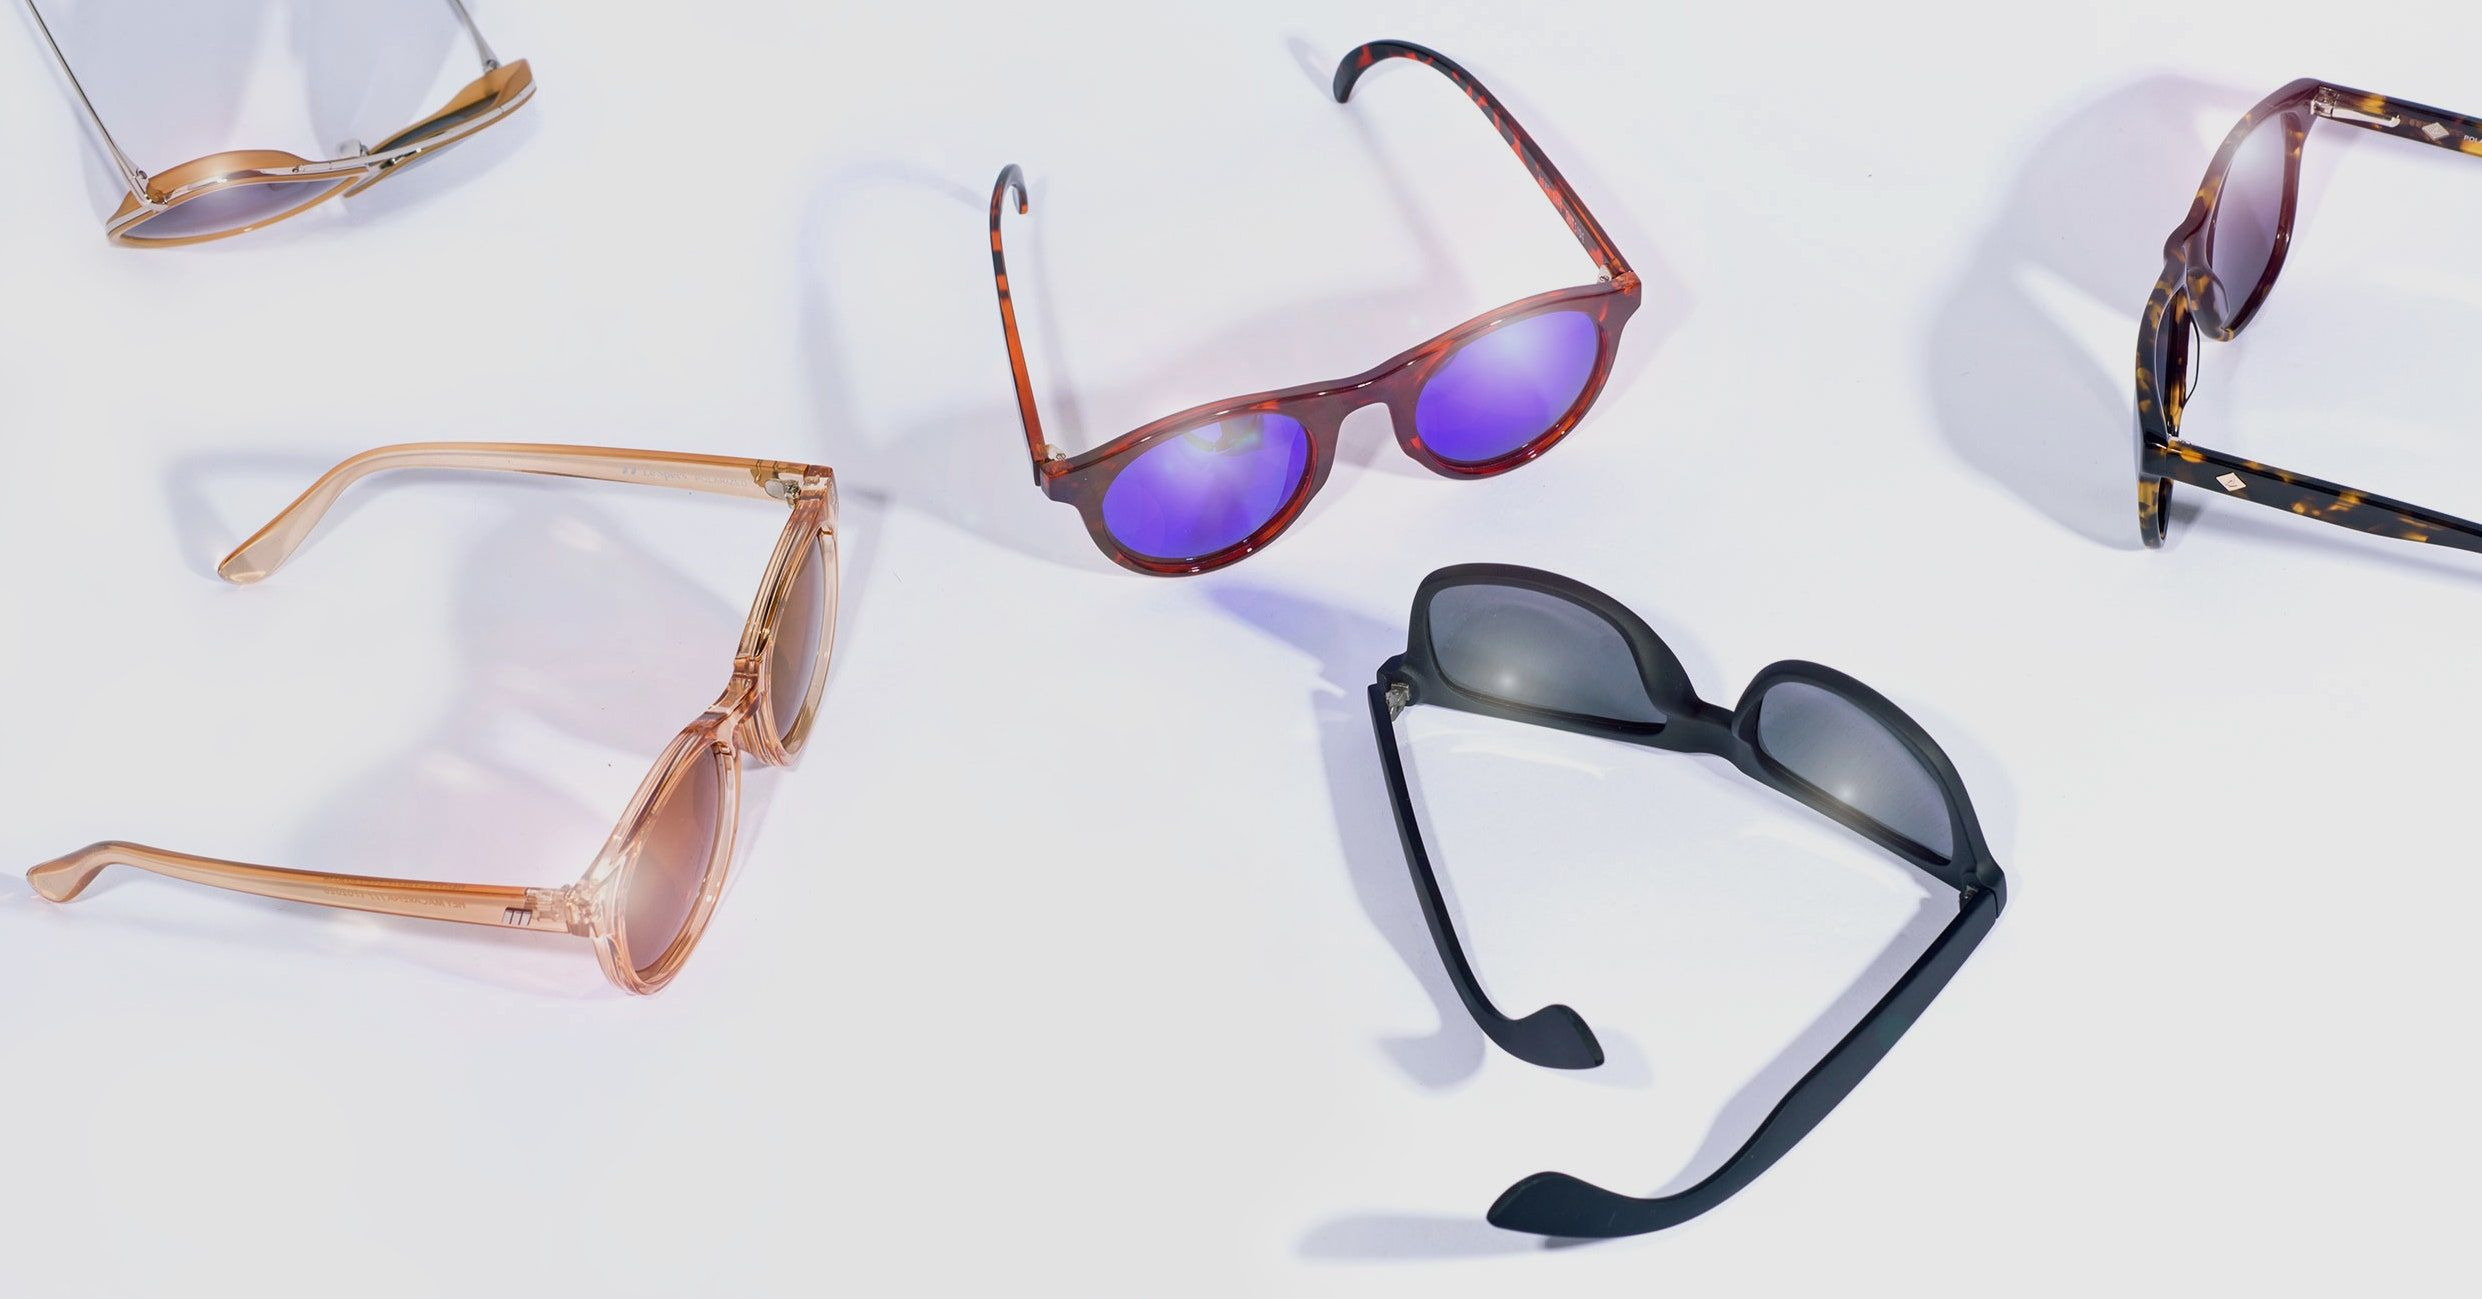 Throwing Shade: 7 Polarized Sunglasses for Summer Fun